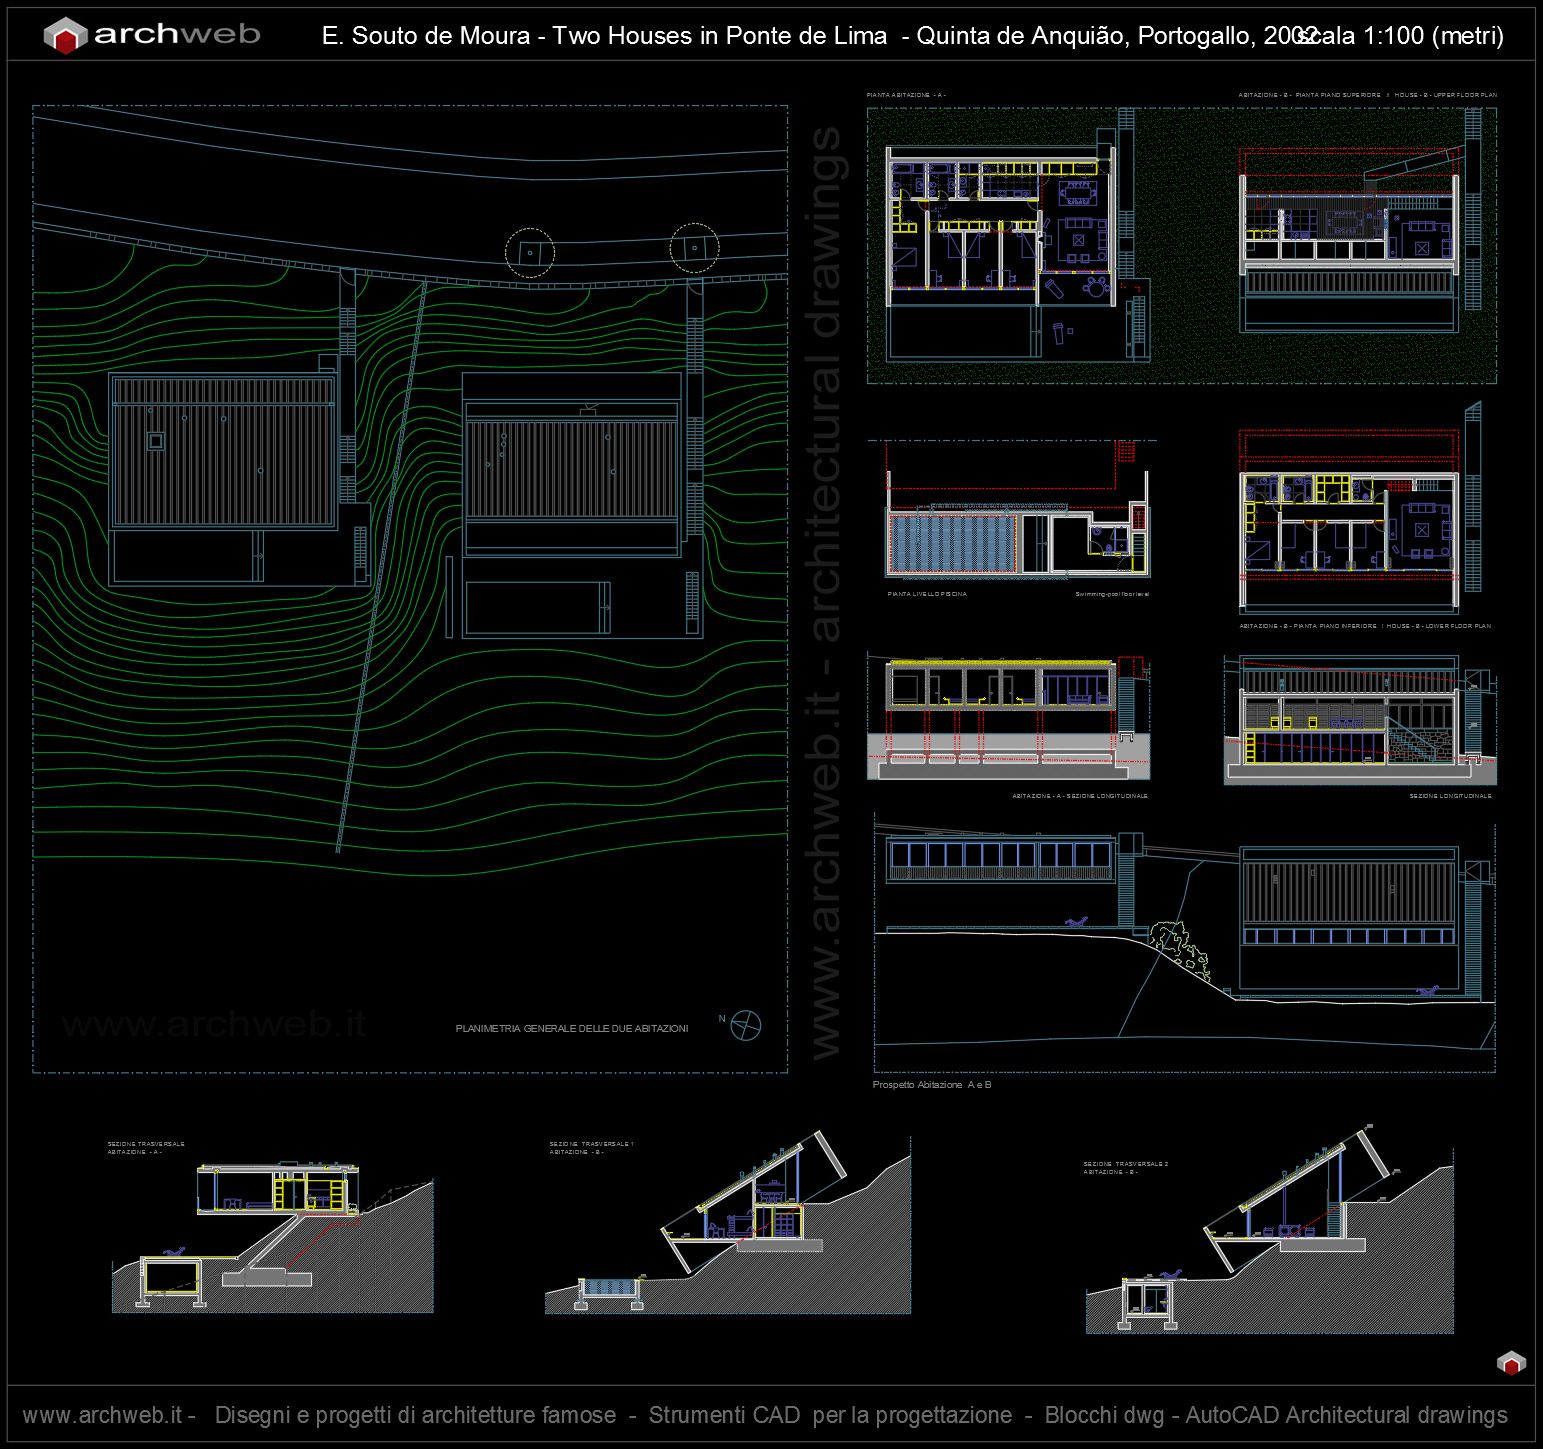 Amazing houses in ponte de lima autocad dwg with progetti dwg - Uscire da finestra layout autocad ...